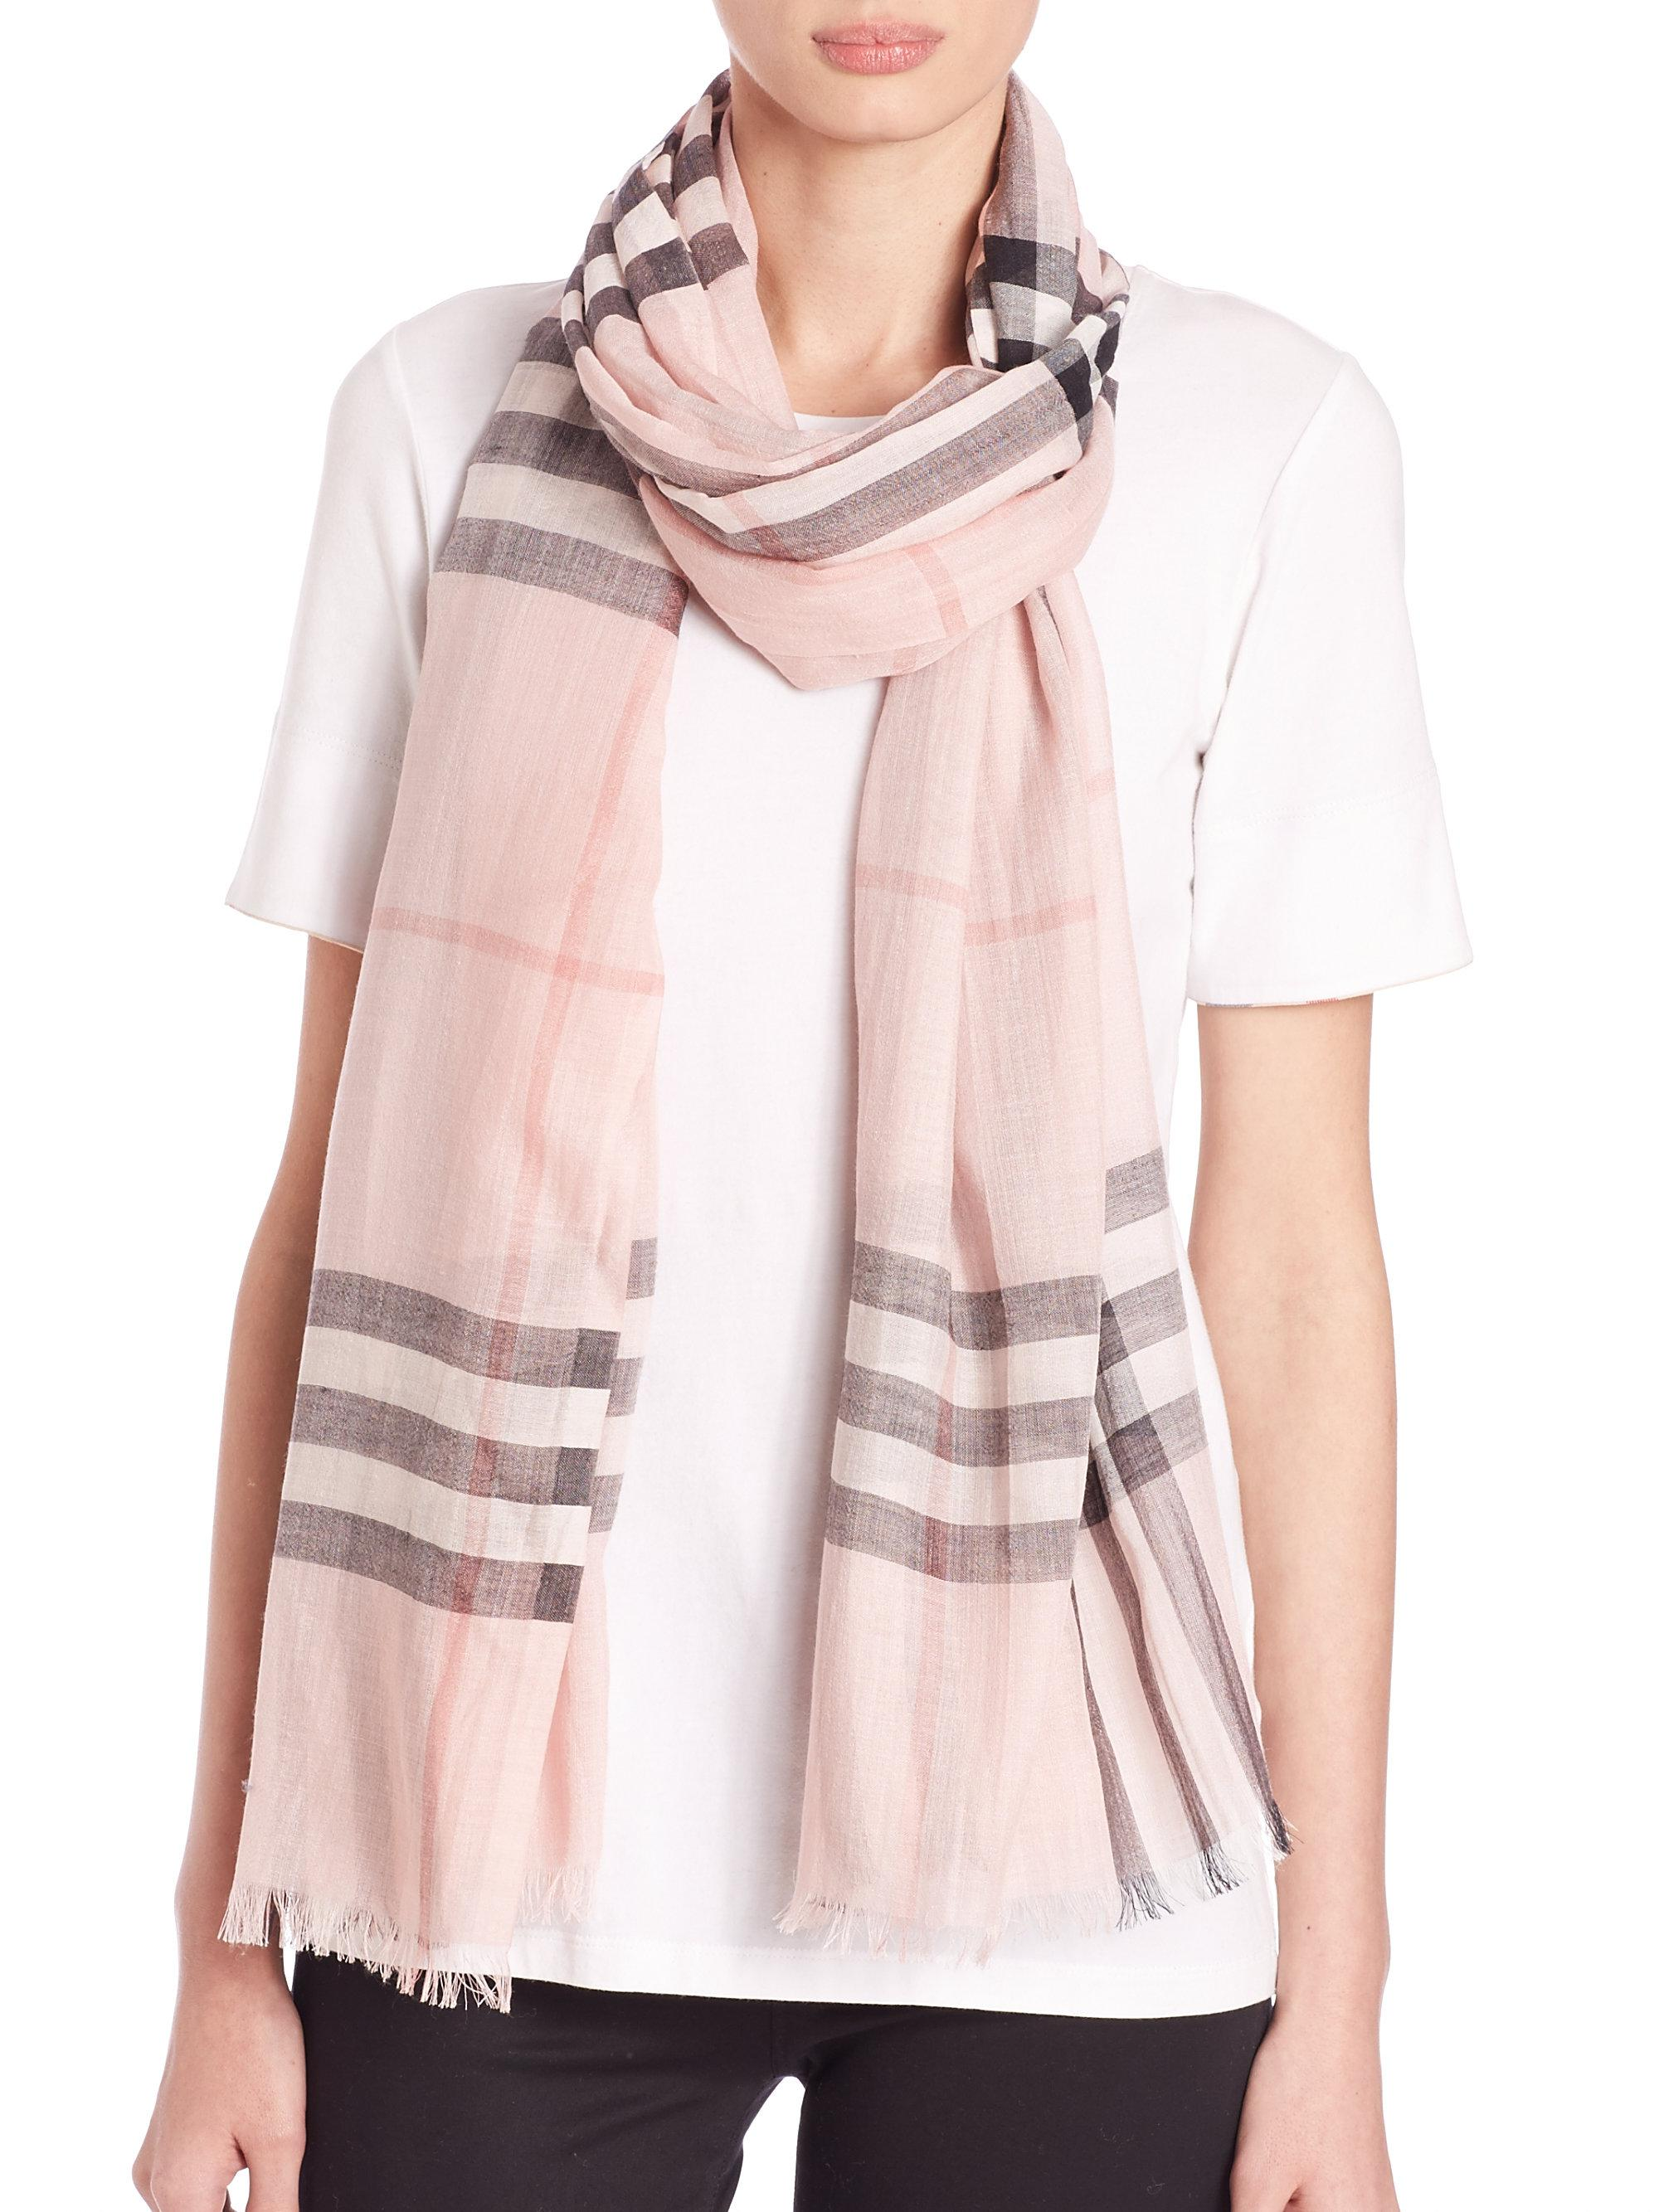 215X70 Metallic Gauze Giant Check Scarf in Ash Rose Wool, Mulberry Silk, Lurex and Viscose Burberry